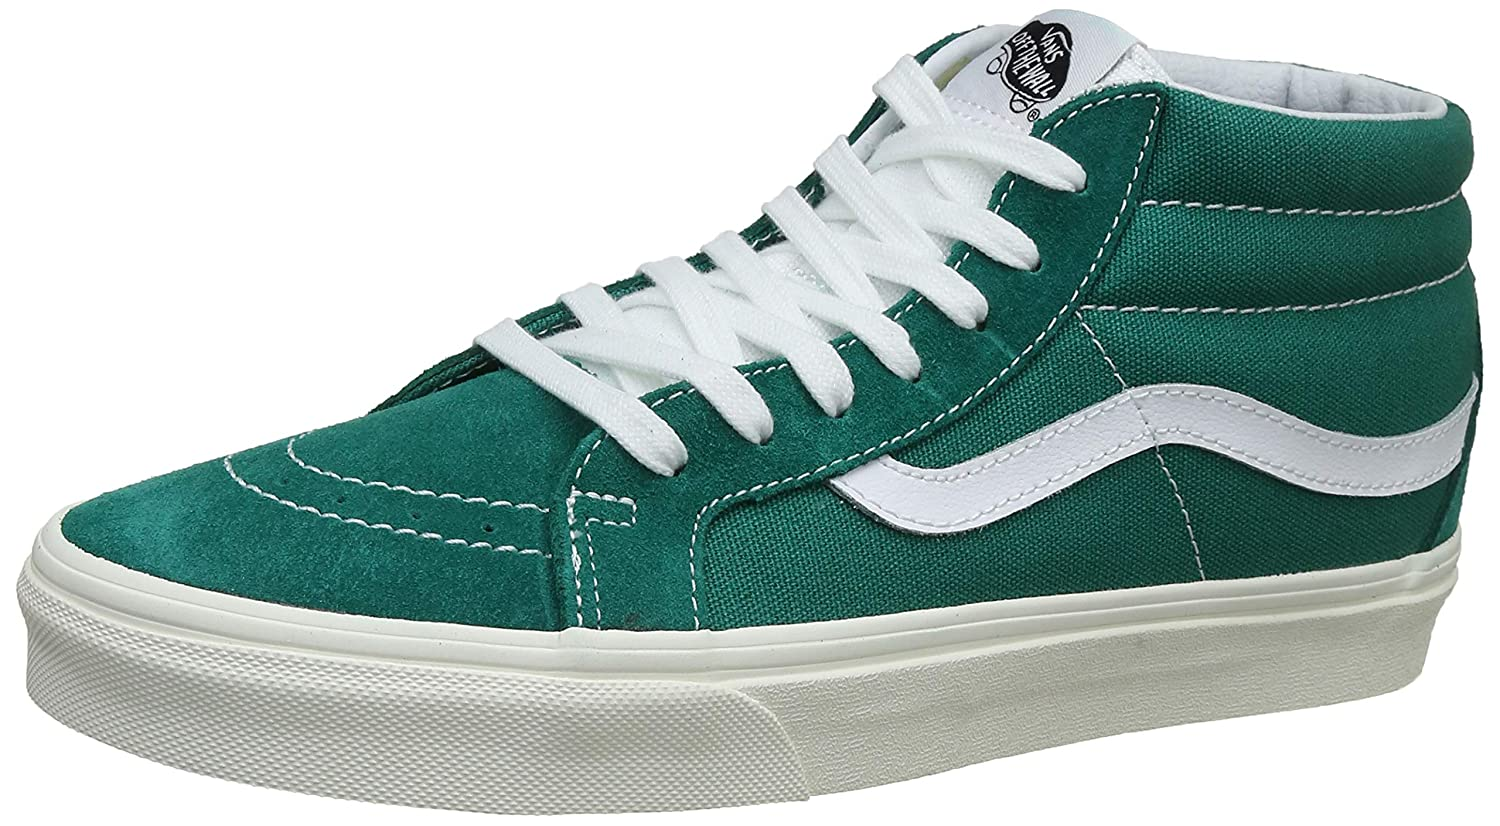 [バンズ] スニーカー Women's AUTHENTIC (Pig Suede) VN0A38EMU5O レディース B078Y9J2GW Cadmium Green 7295 Men 11/Women 12.5 Men 11/Women 12.5|Cadmium Green 7295